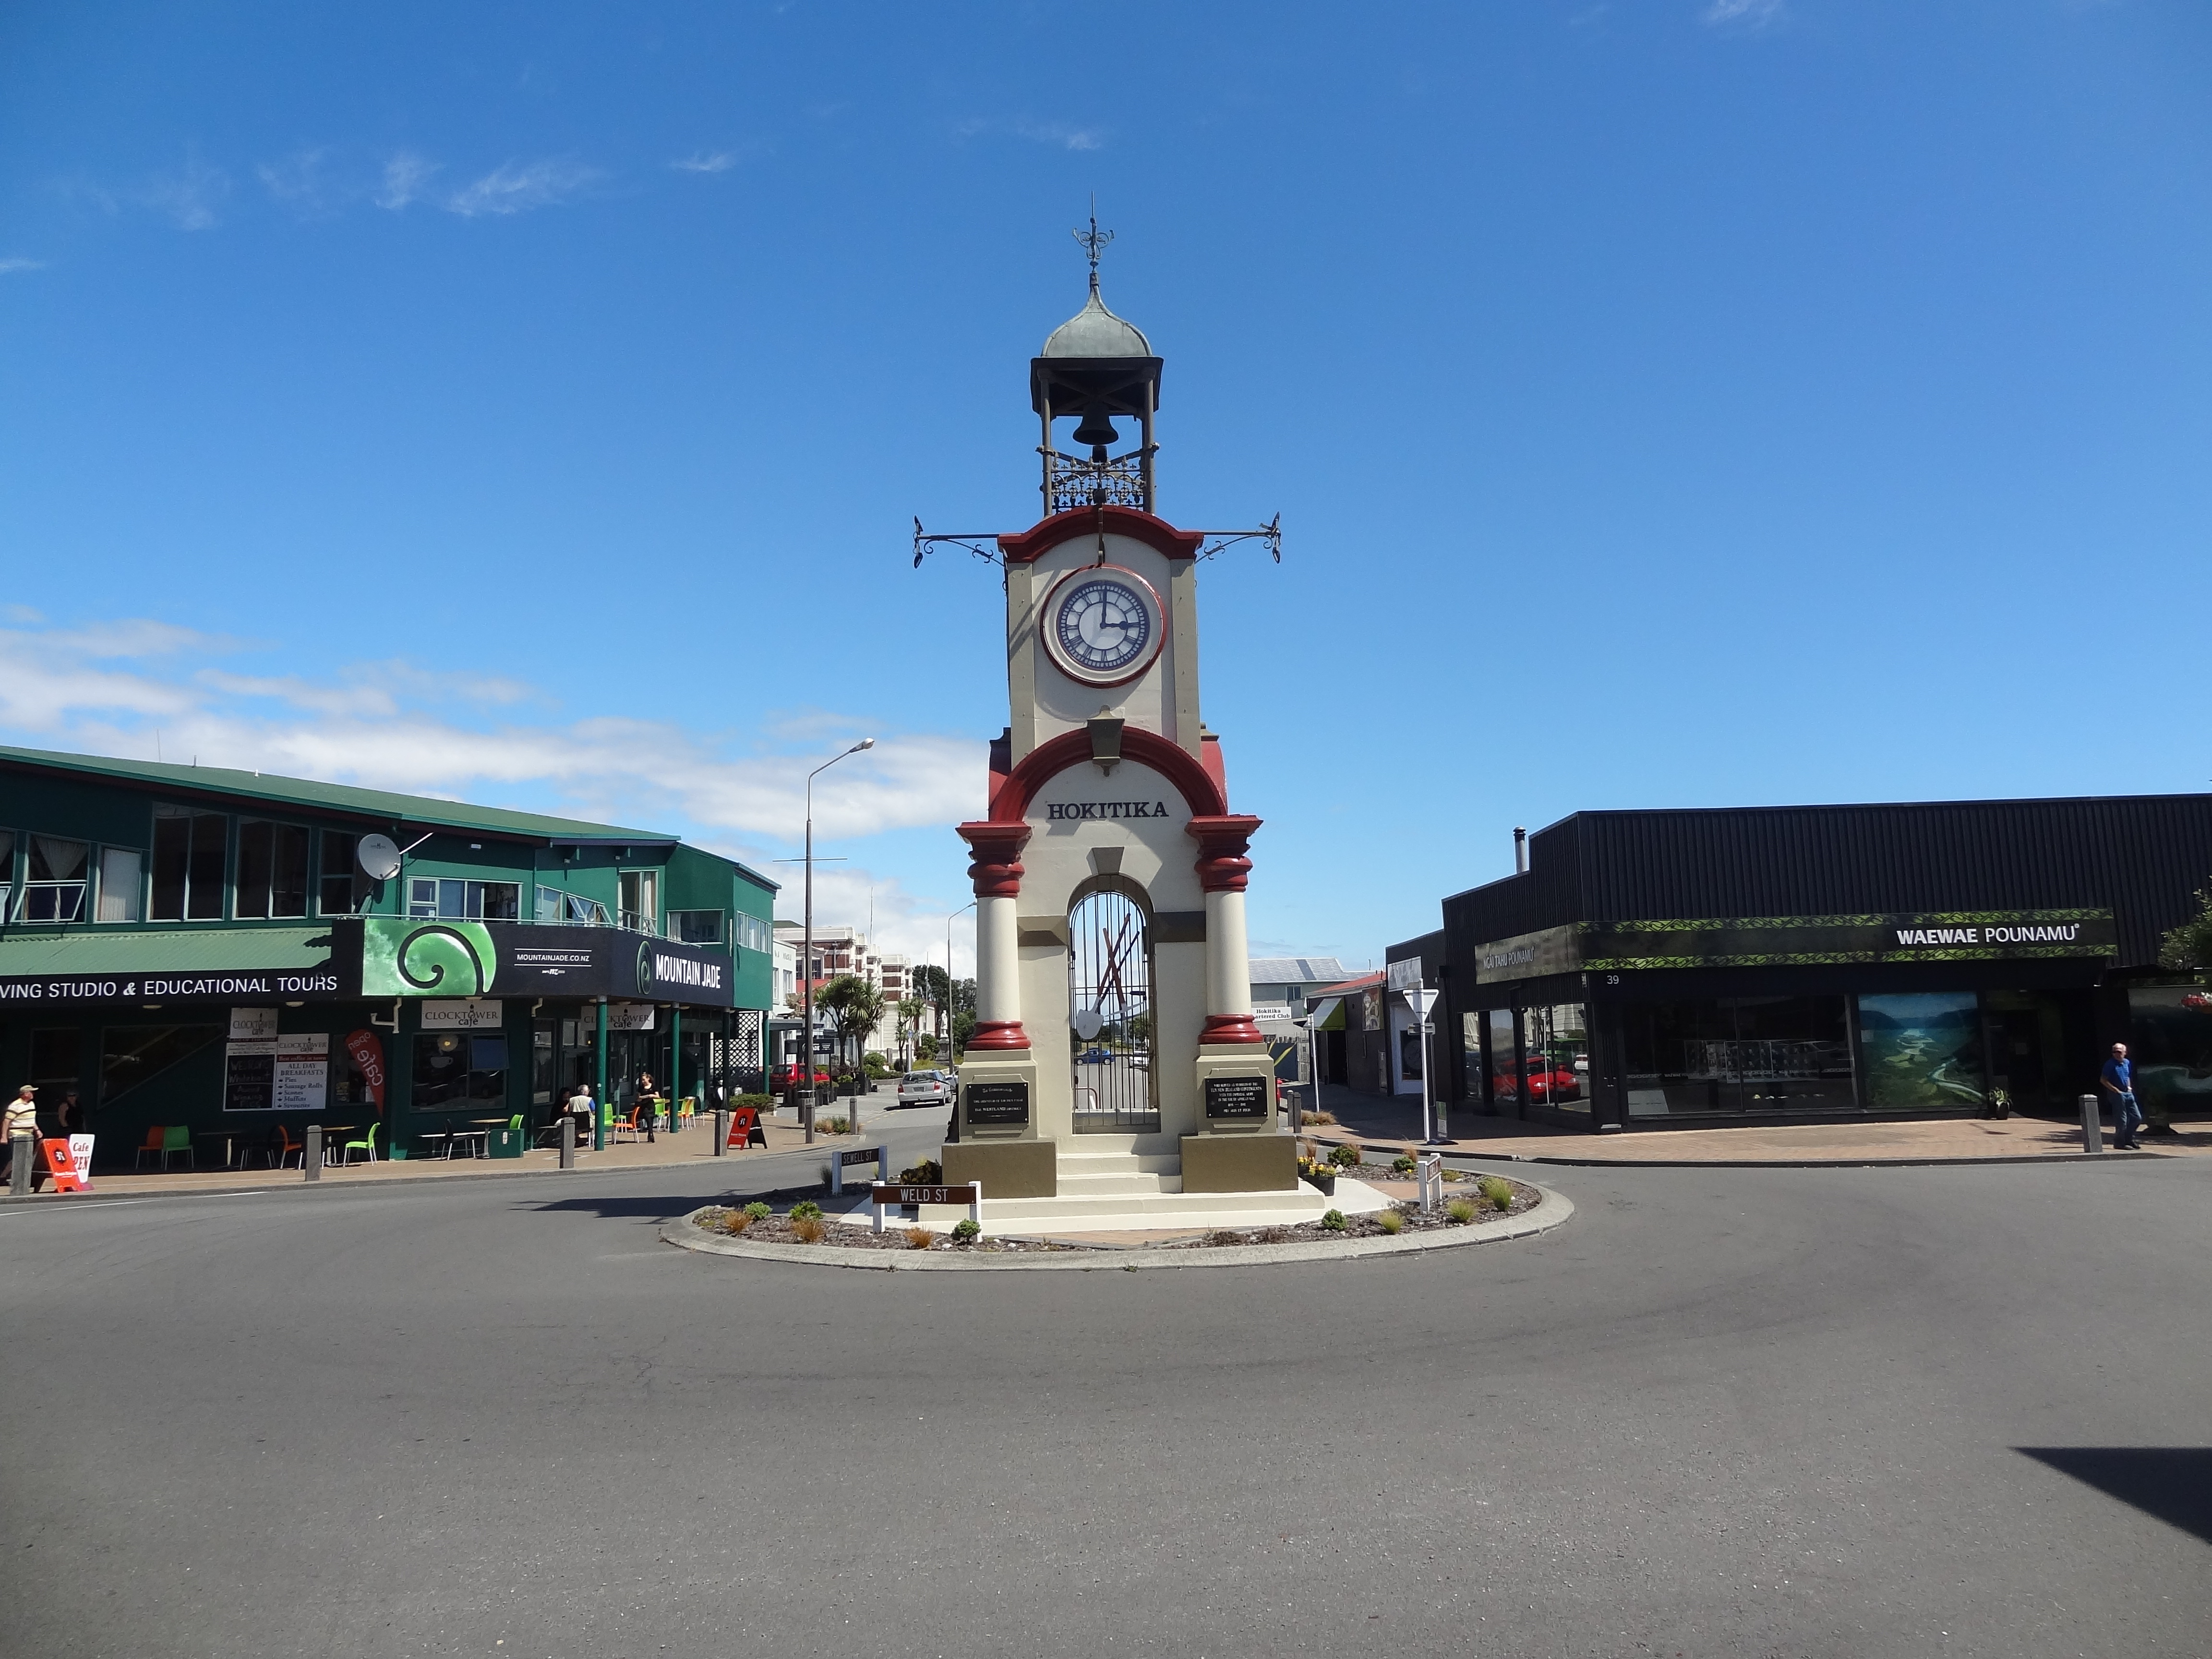 Hokitika Clock Tower.The first shops that can be seen on either side of the road are Pounami ( Greenstone ) Centres